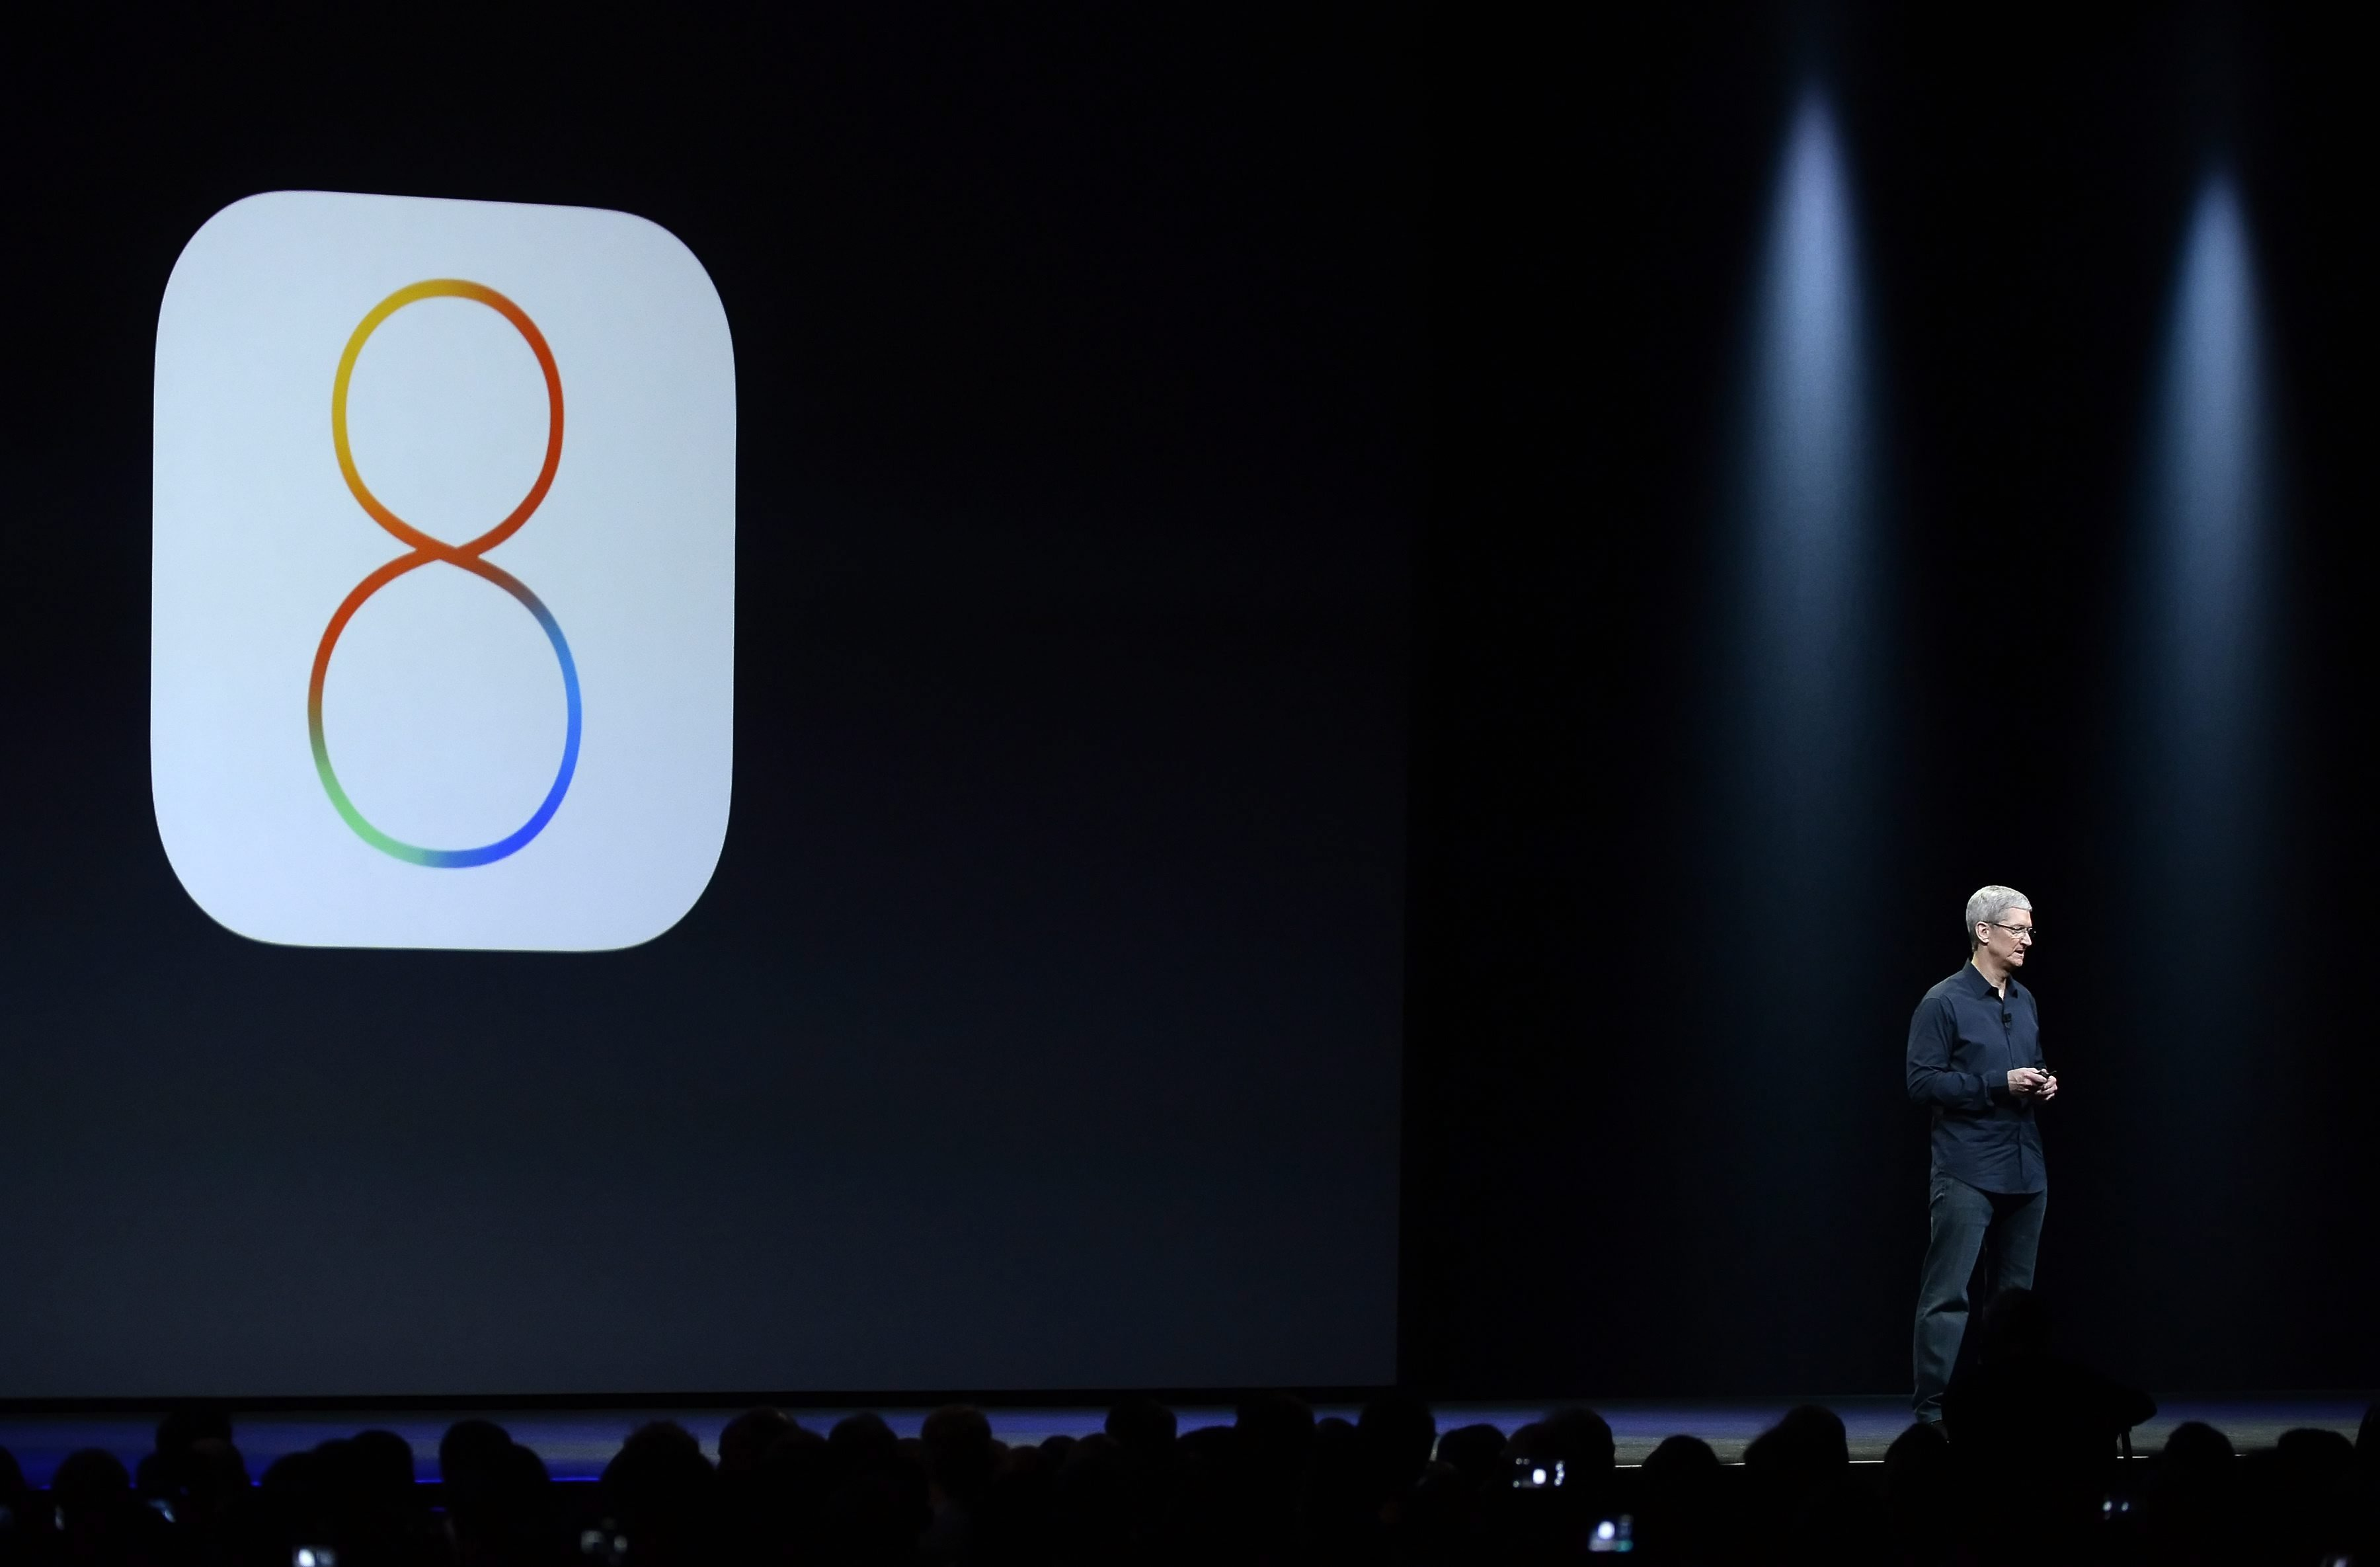 Apple CEO Tim Cook introduces IOS 8 in the Moscone Center in San Francisco, California, USA, June 2, 2014.